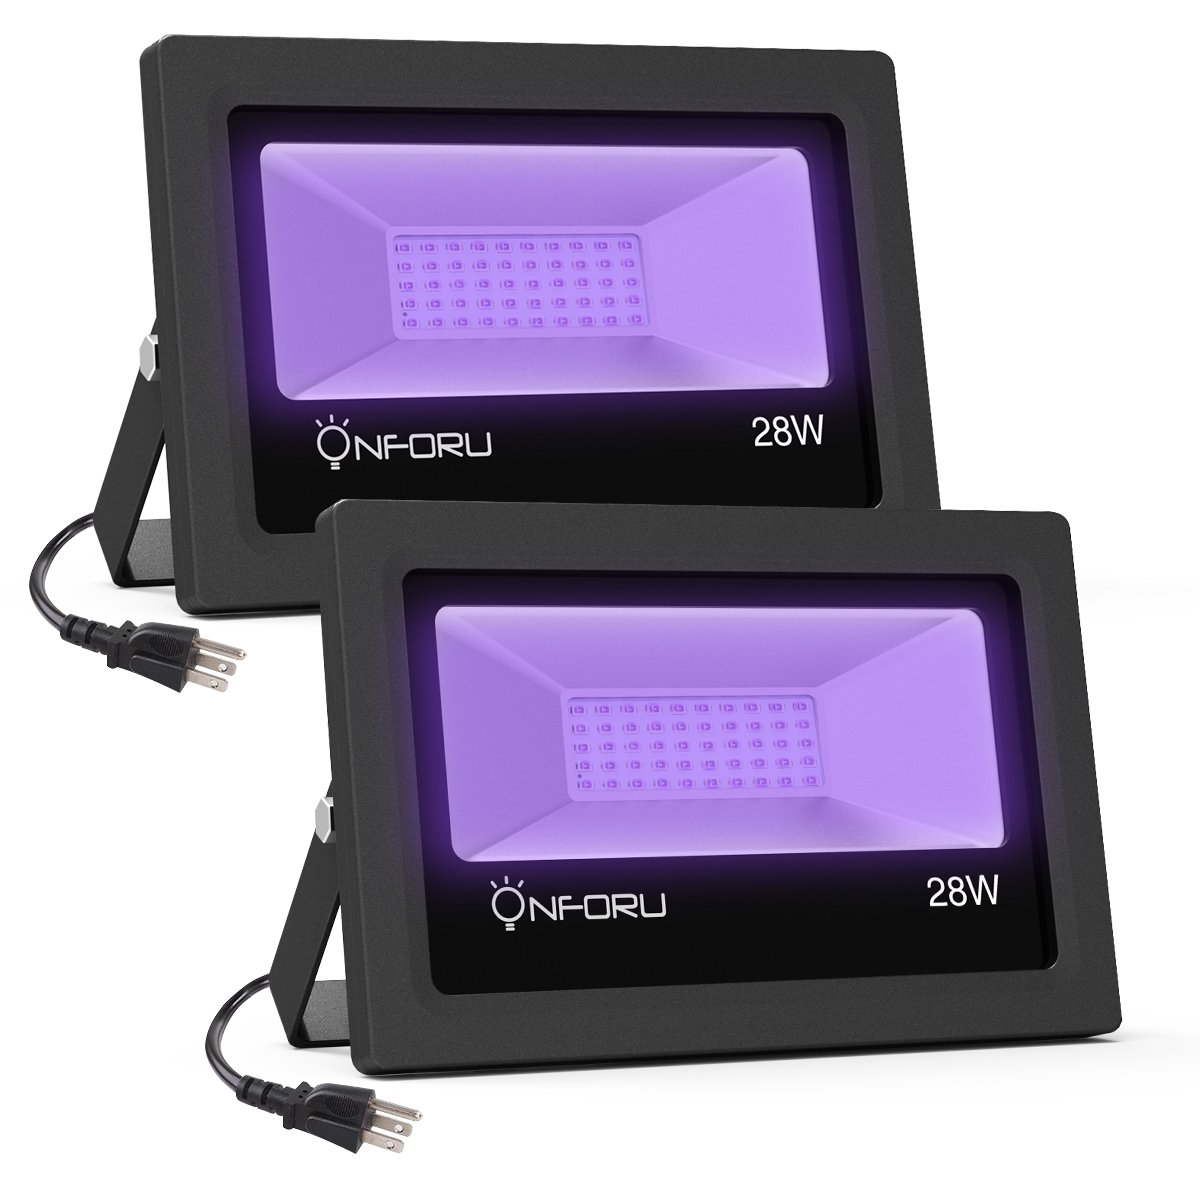 Onforu 2 Pack 28W UV LED Black Light Flood Light with Plug, IP66 Waterproof, for Blacklight Party, Stage Lighting, Aquarium, Body Paint, Fluorescent Poster, Neon Glow, Fishing, Glow in the Dark by Onforu (Image #1)